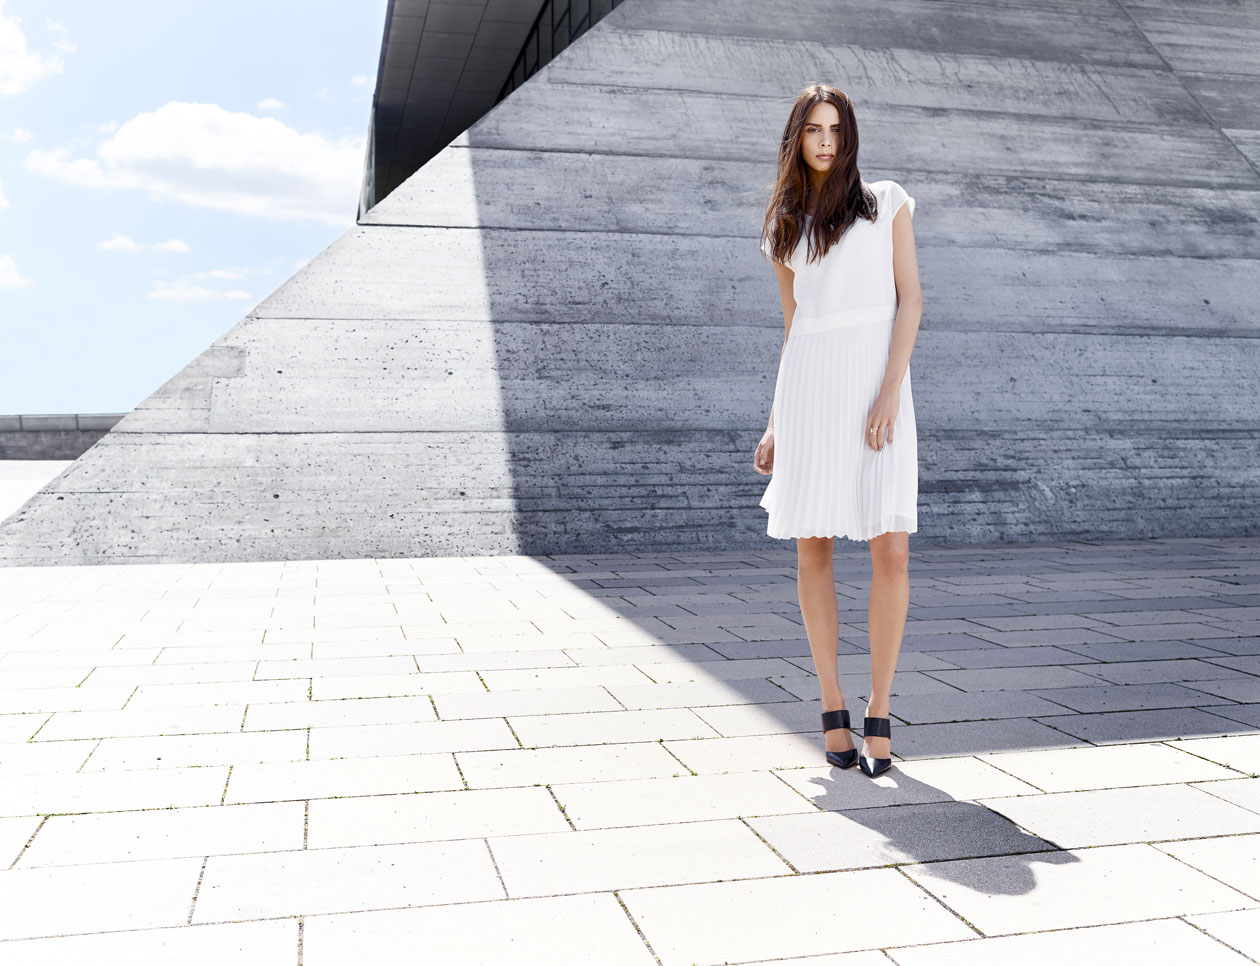 BLACKY_DRESS_CAMPAIGN_ss2015_photographed_by_Mika_Ceron_002.jpg